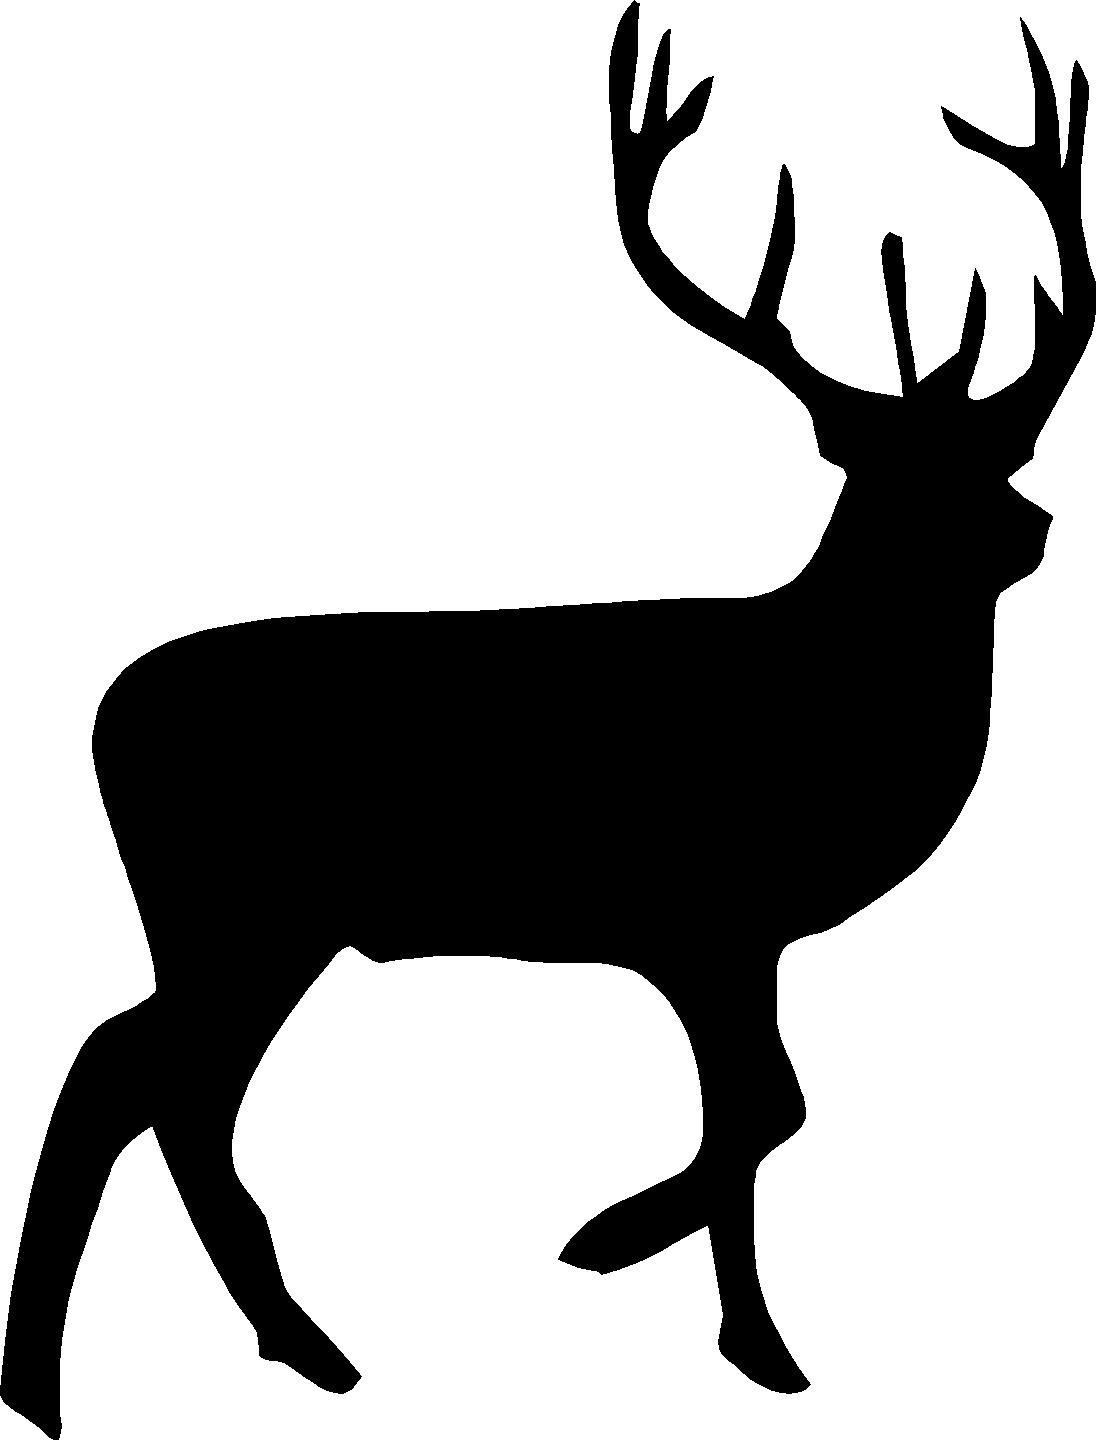 Baby buck head clipart transparent library 5+ Buck Clip Art | ClipartLook transparent library